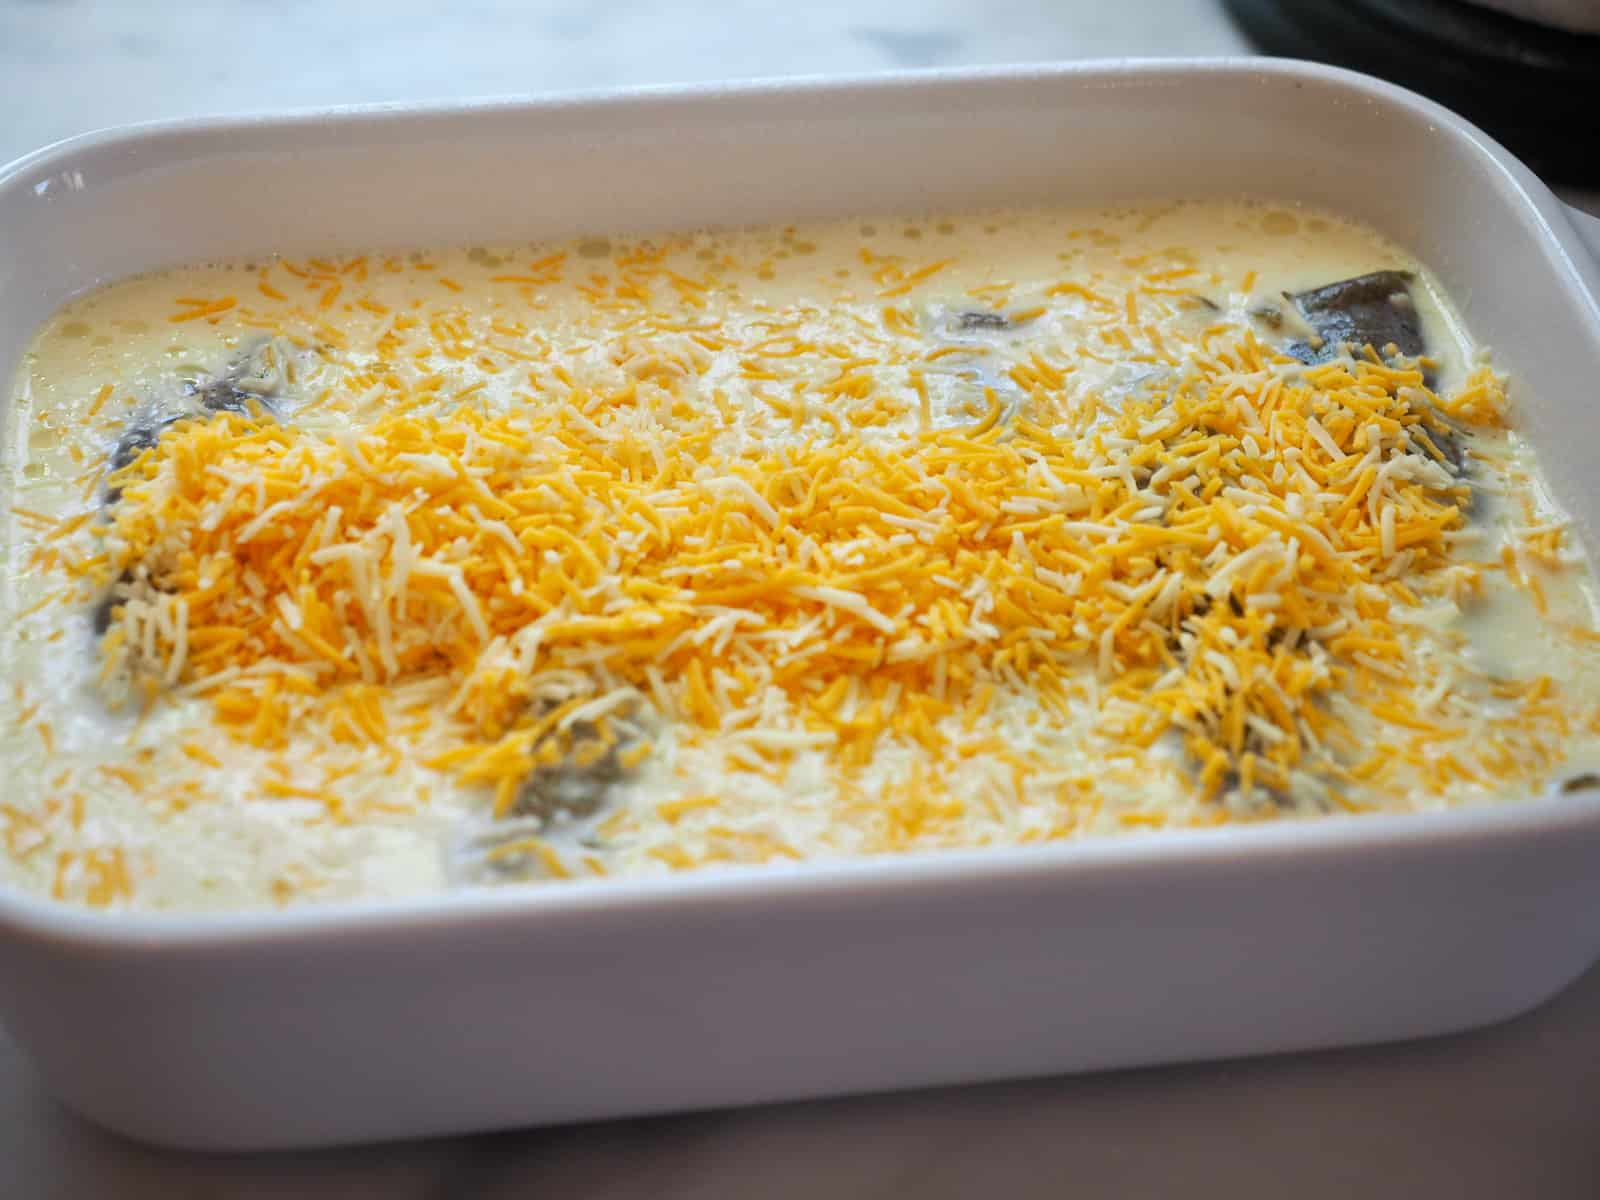 casserole with hatch green chiles stuffed with cheese, with a milk, egg mixture poured on top, sprinkled with more grated cheese. Easy Chile Rellenos | thefreshcooky